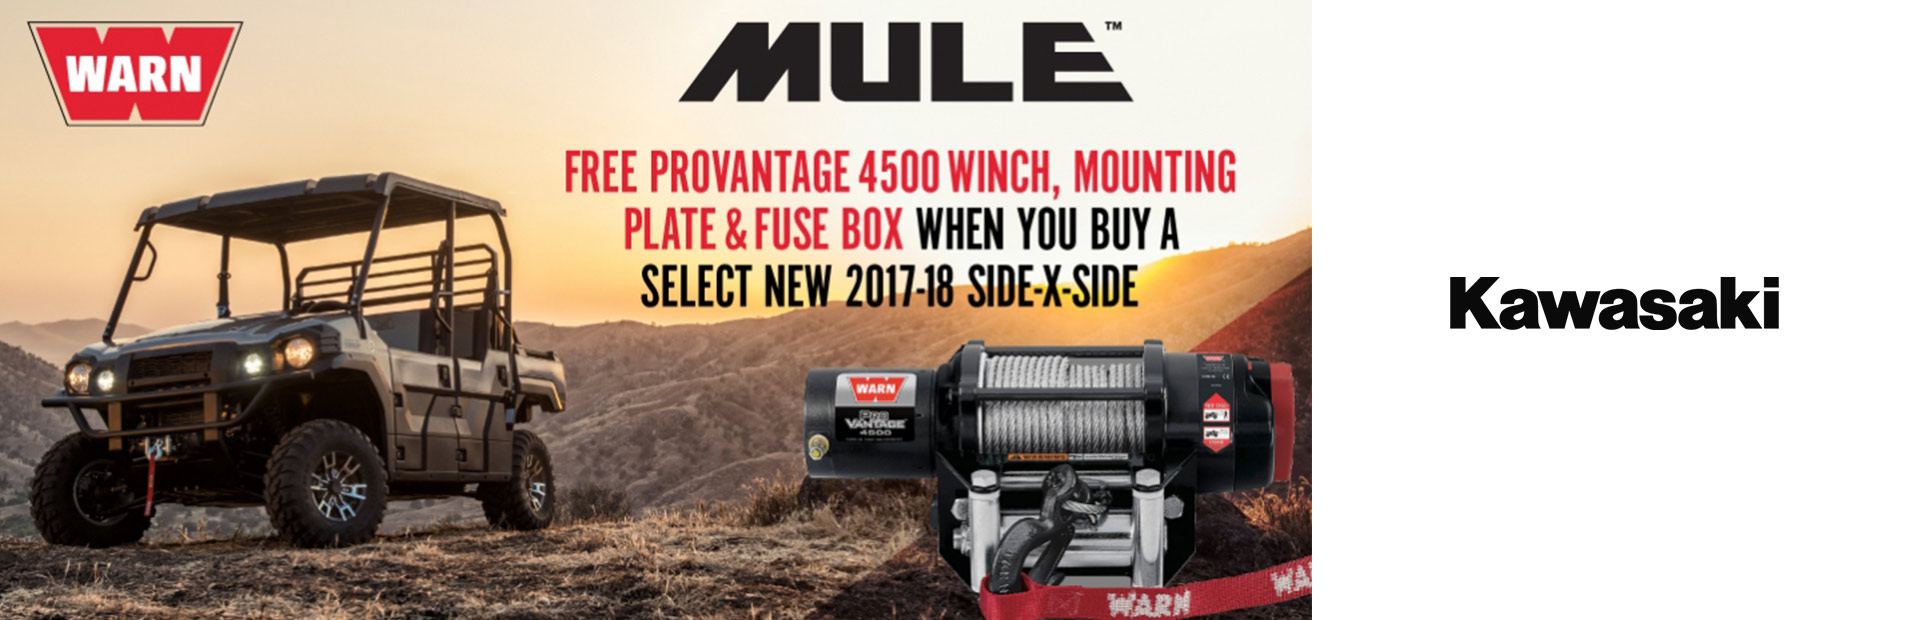 WARN Free Winch Offer